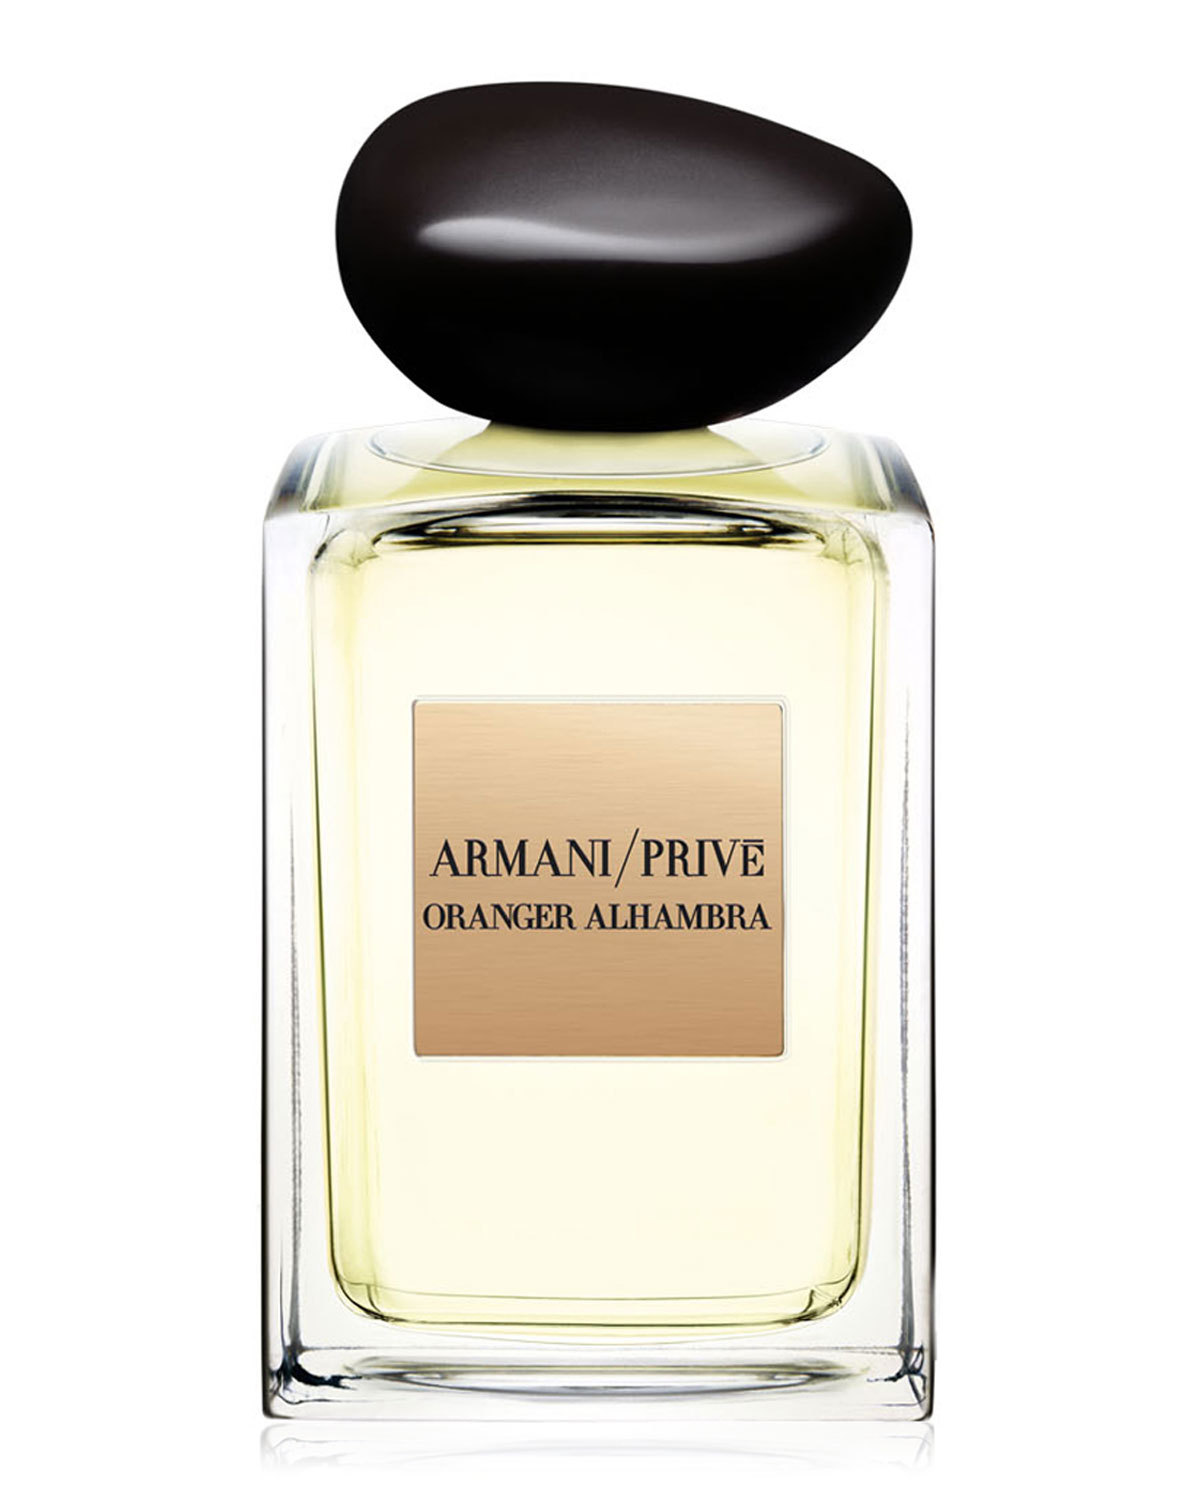 ORANGE ALHAMBRA by Armani/Prive 5ml Travel Spray Perfume MARJORAM BITTER ORANGE